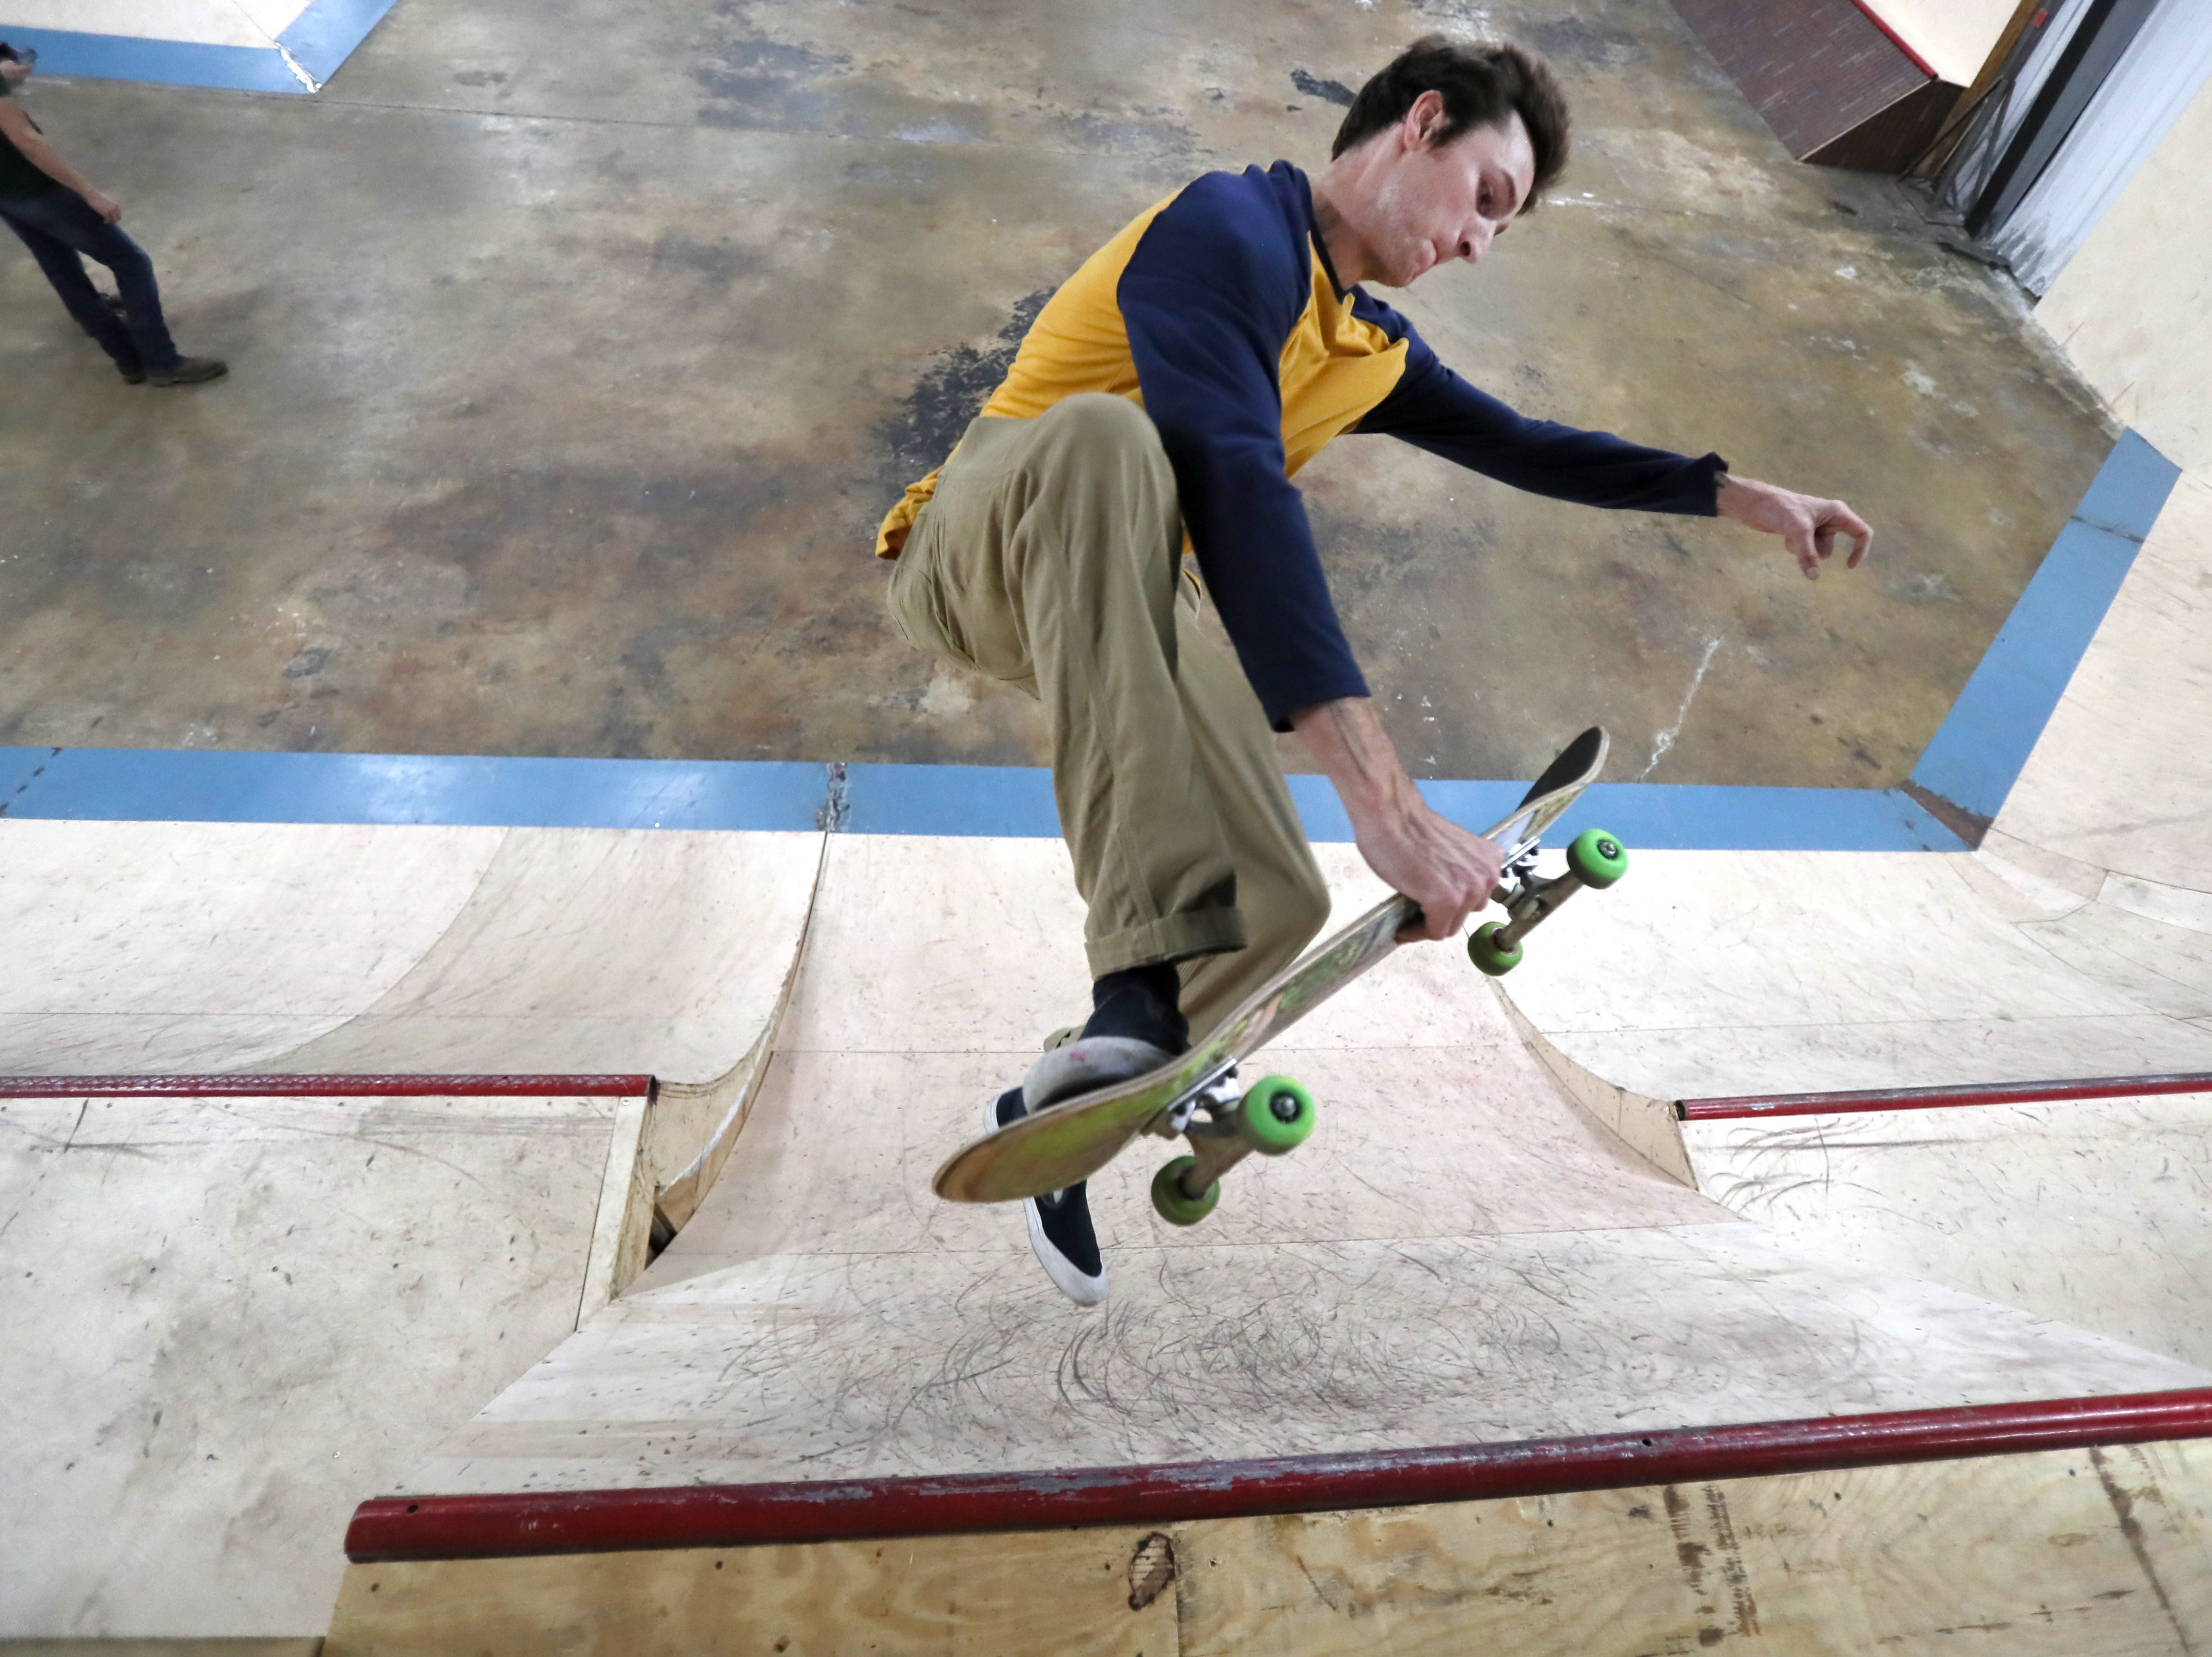 Crocker Rider, 25, rides inside Society Skatepark, a joint venture with Contact Skateboard Shop in the Broad Avenue Arts District which held its soft opening on Thursday, Dec. 20, 2018.